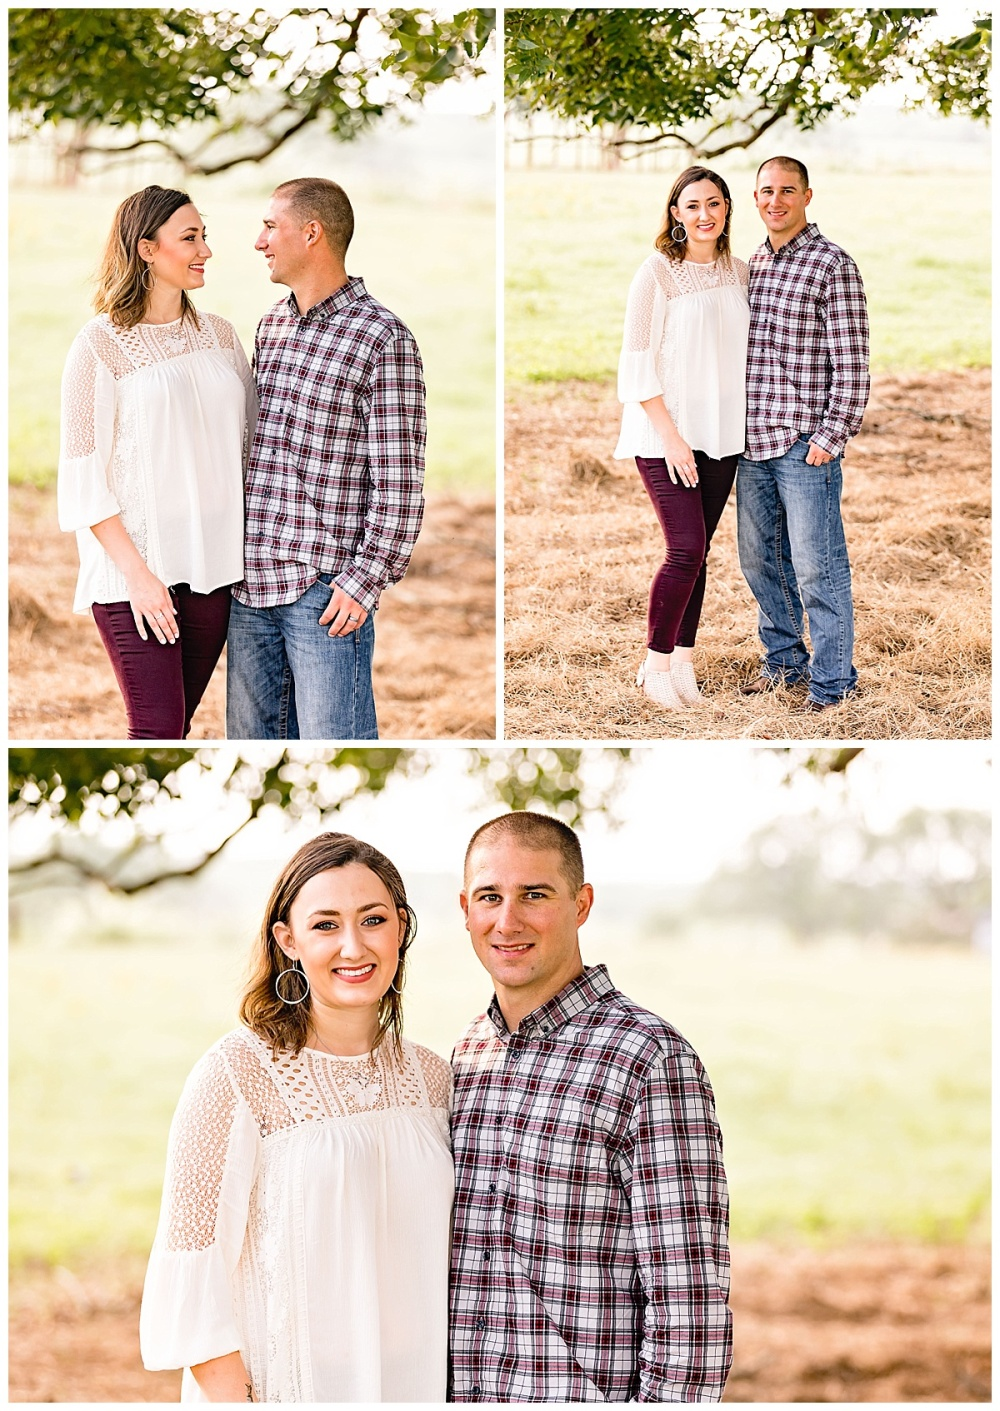 Family-Photographer-LaVernia-Texas-Fall-Carly-Barton-Photography_0006.jpg